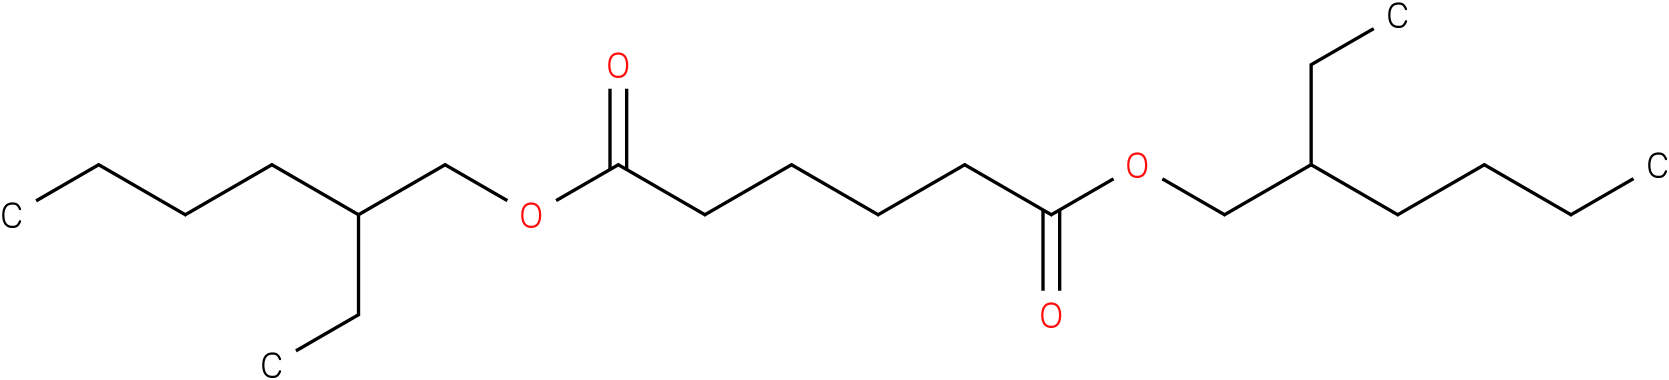 2-Chloromethyl-pyrazine